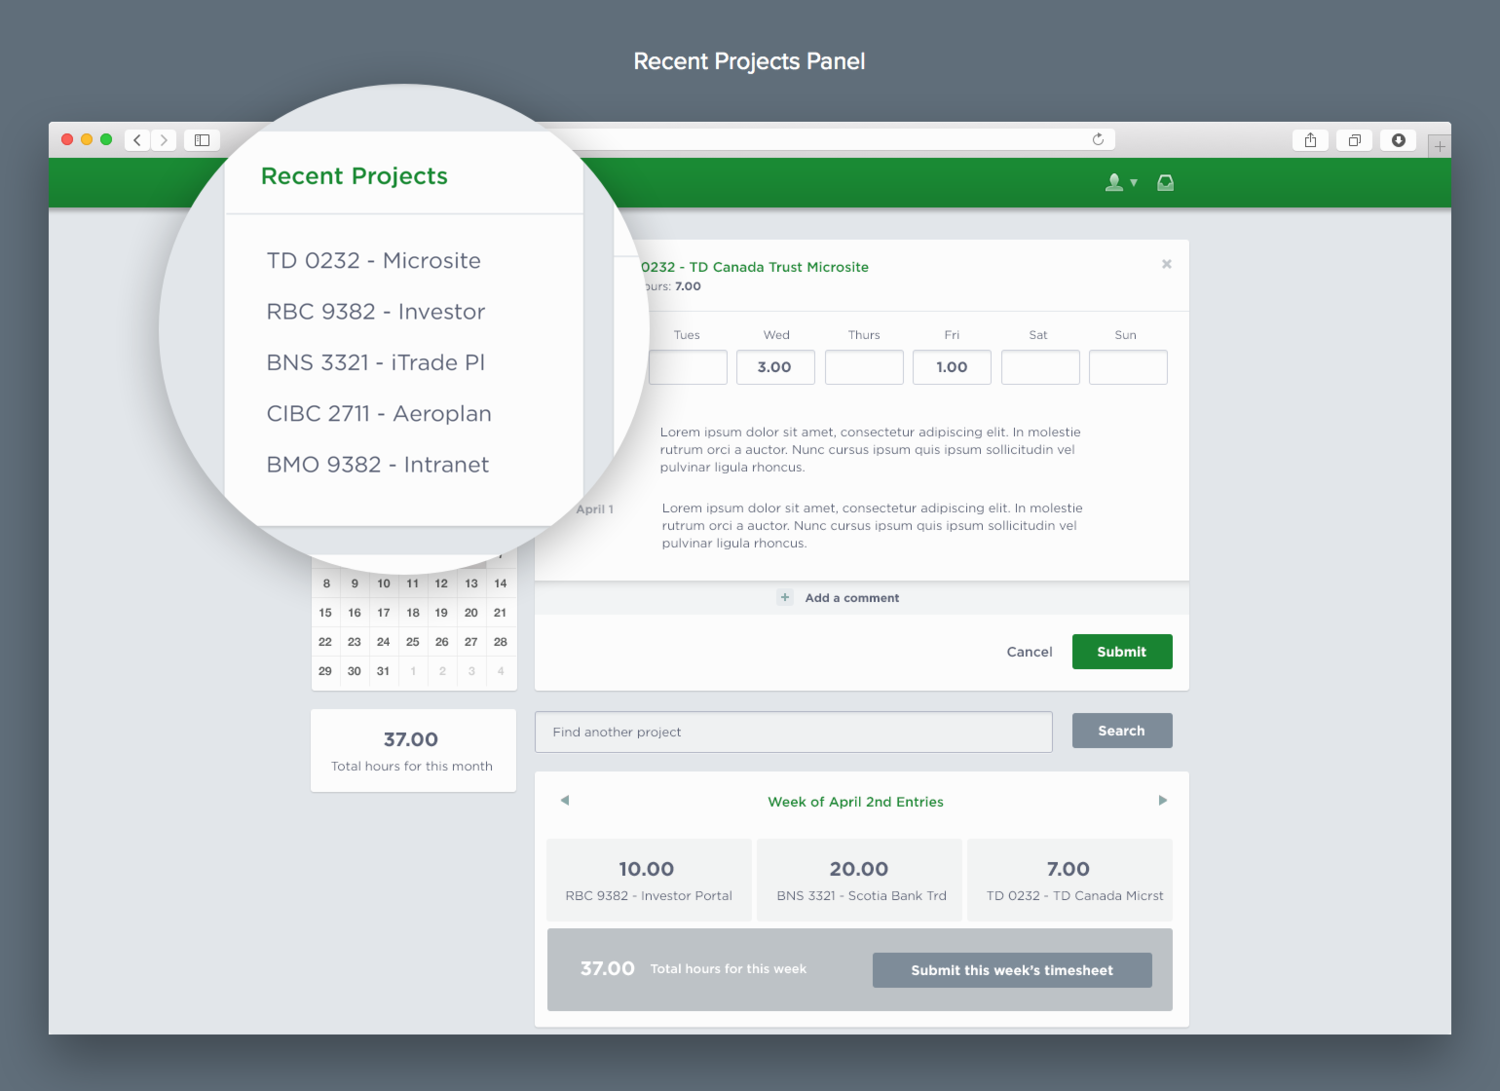 Timesheet App  Recent Project Panel Ui Ux Design  Portfolio